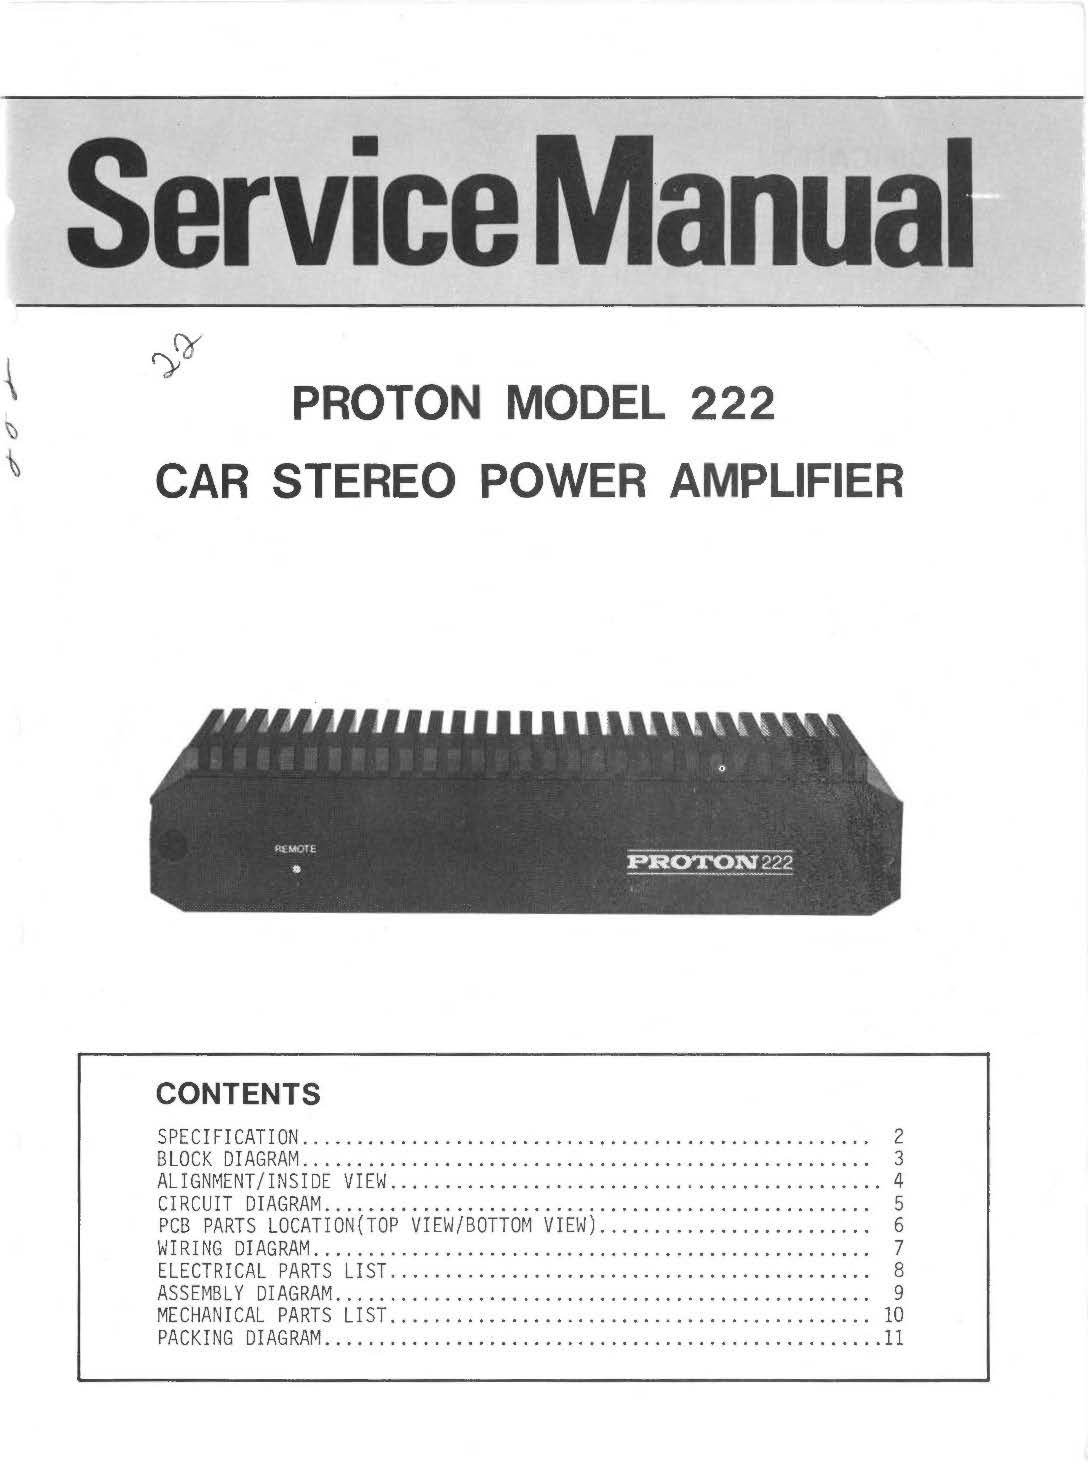 Proton Model 222 Car Stereo Power Amplifier Books Block Wiring Diagram